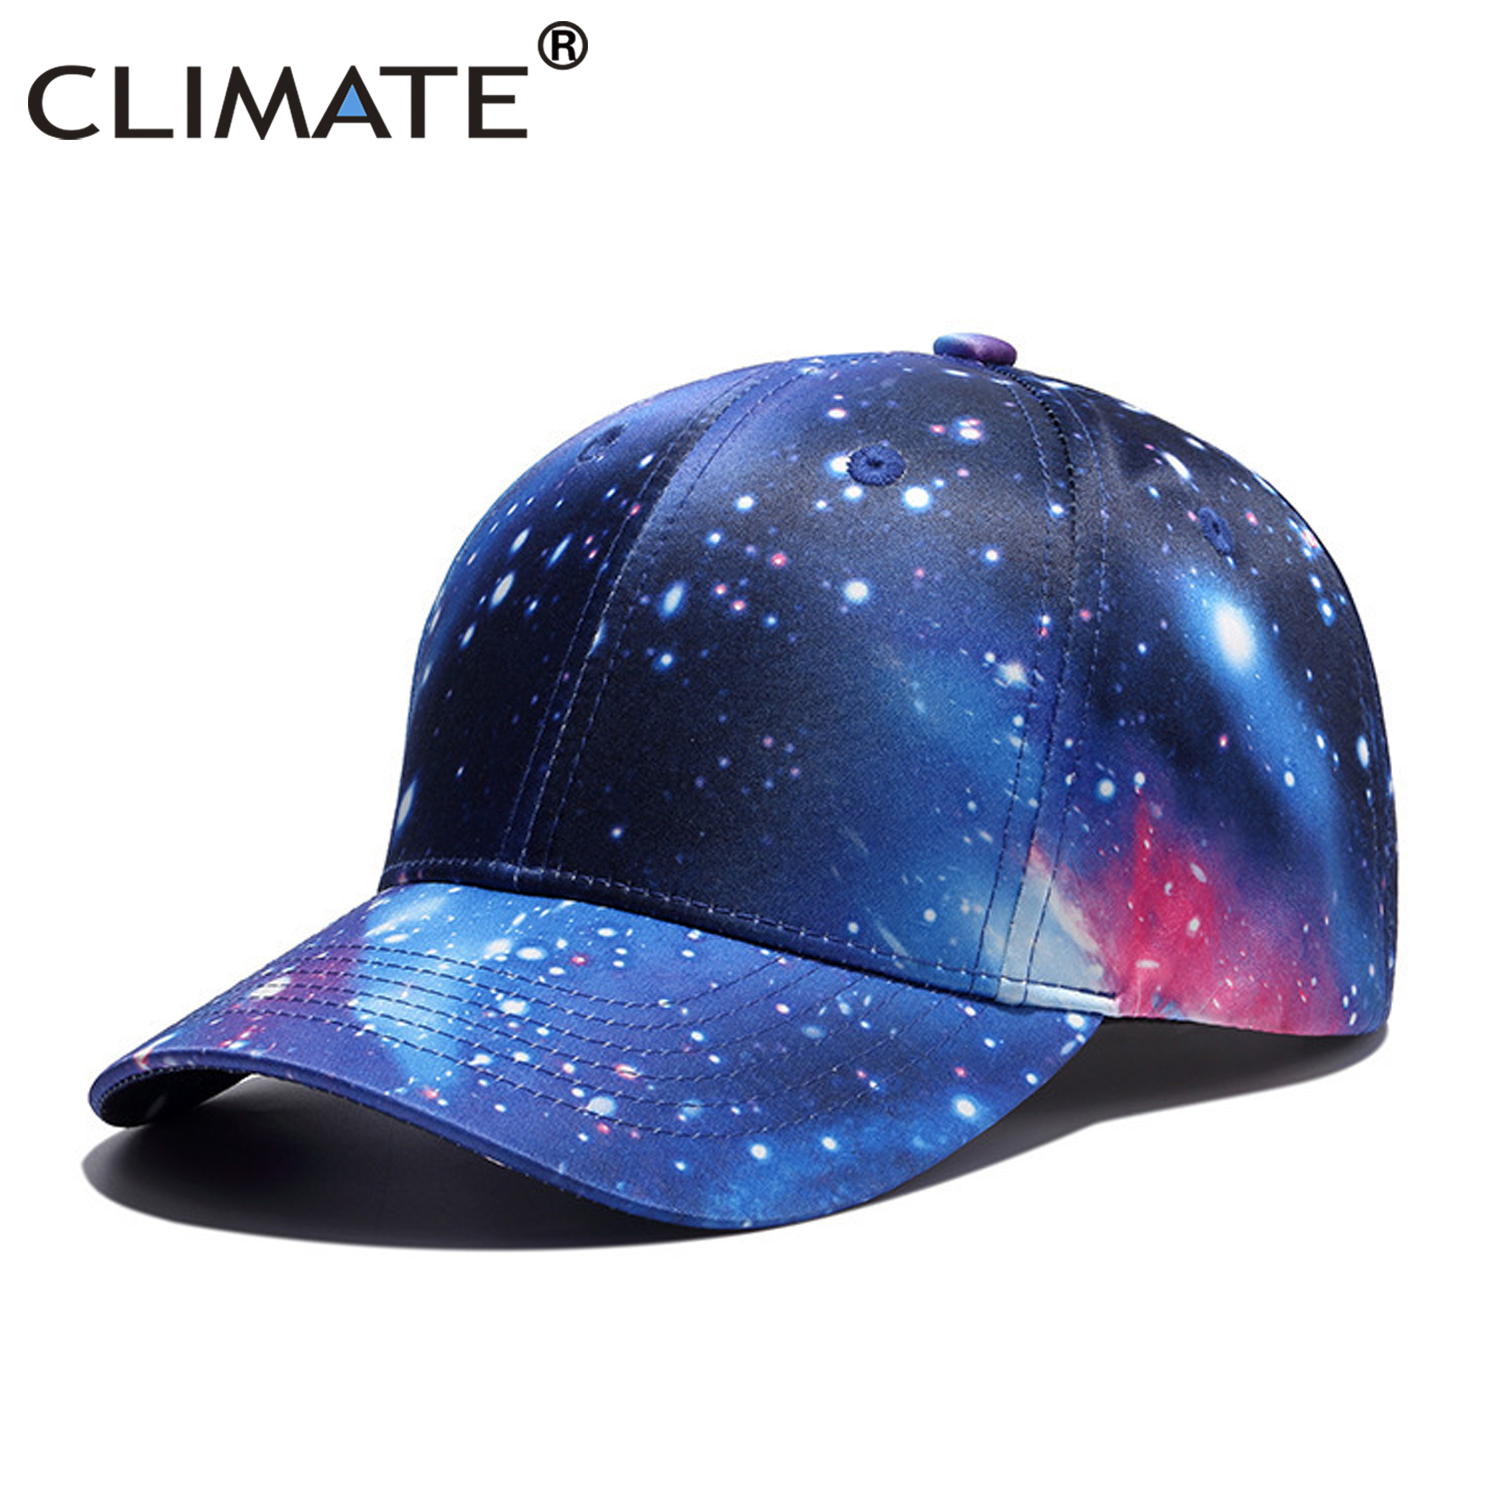 b4b8e321790 CLIMATE 3D Printing Baseball Cap Hip Hop Street Style Cap Hat Rapper Outer  Space Galaxy Caps Street Dancer Dance Caps Hat Men